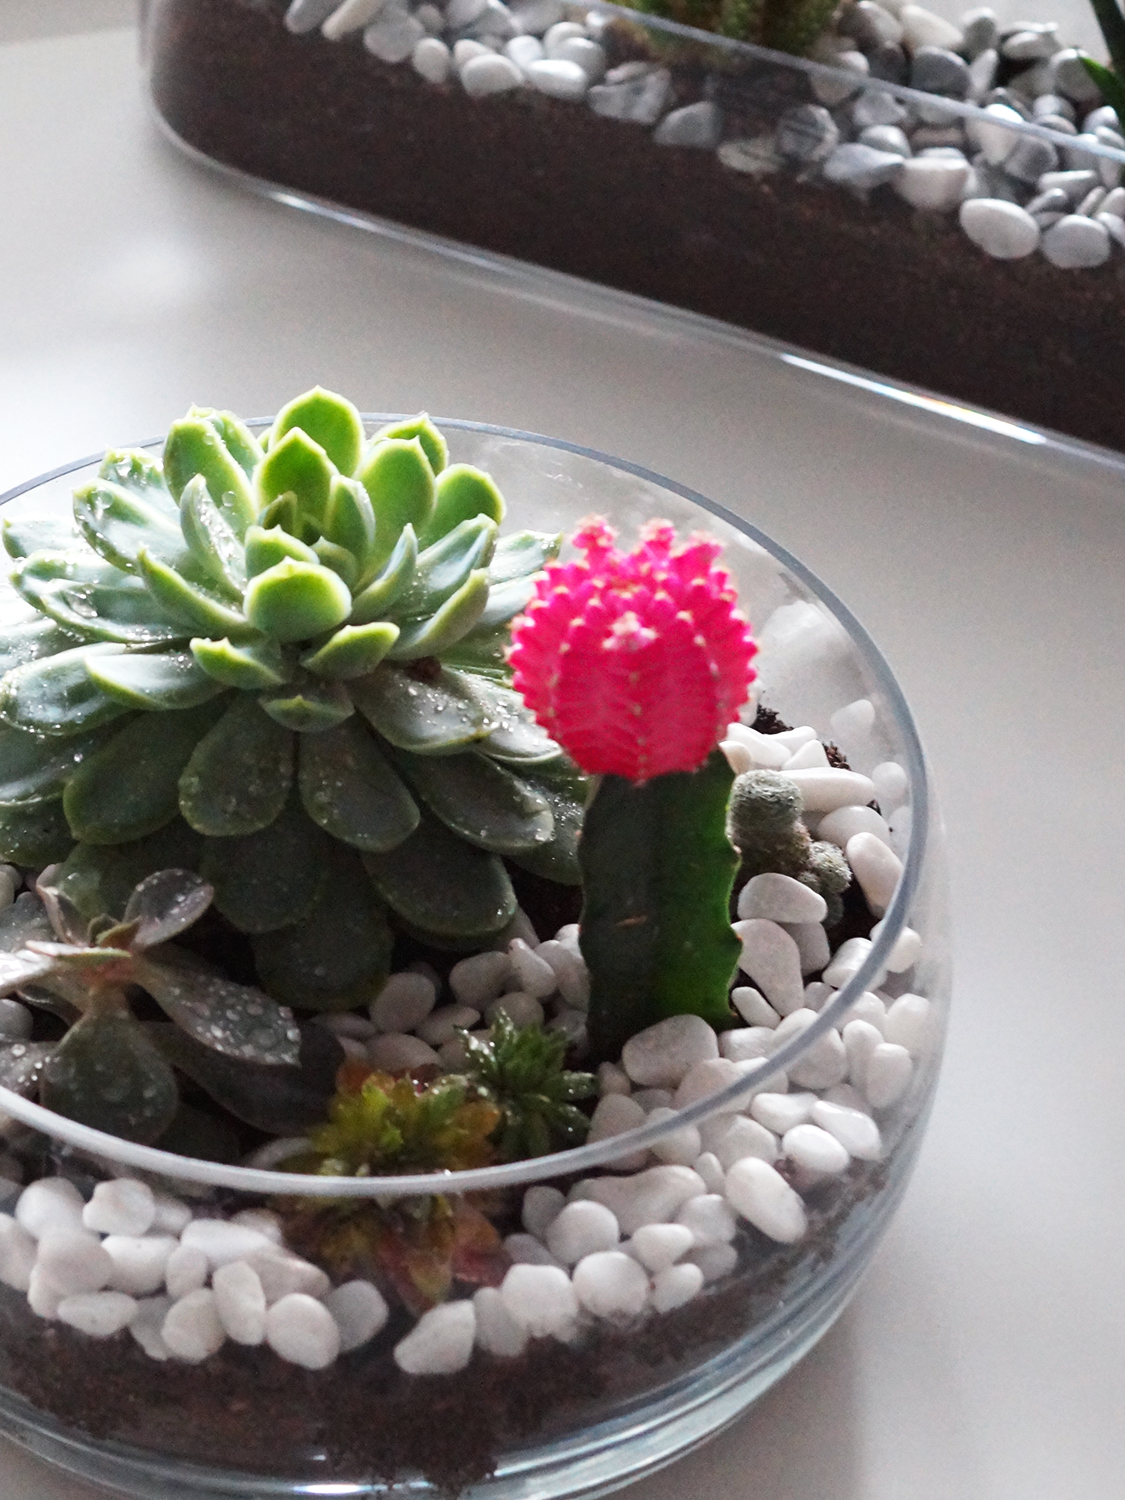 How To Make Your Own Cactus Succulent Terrarium A Snippet Of Life